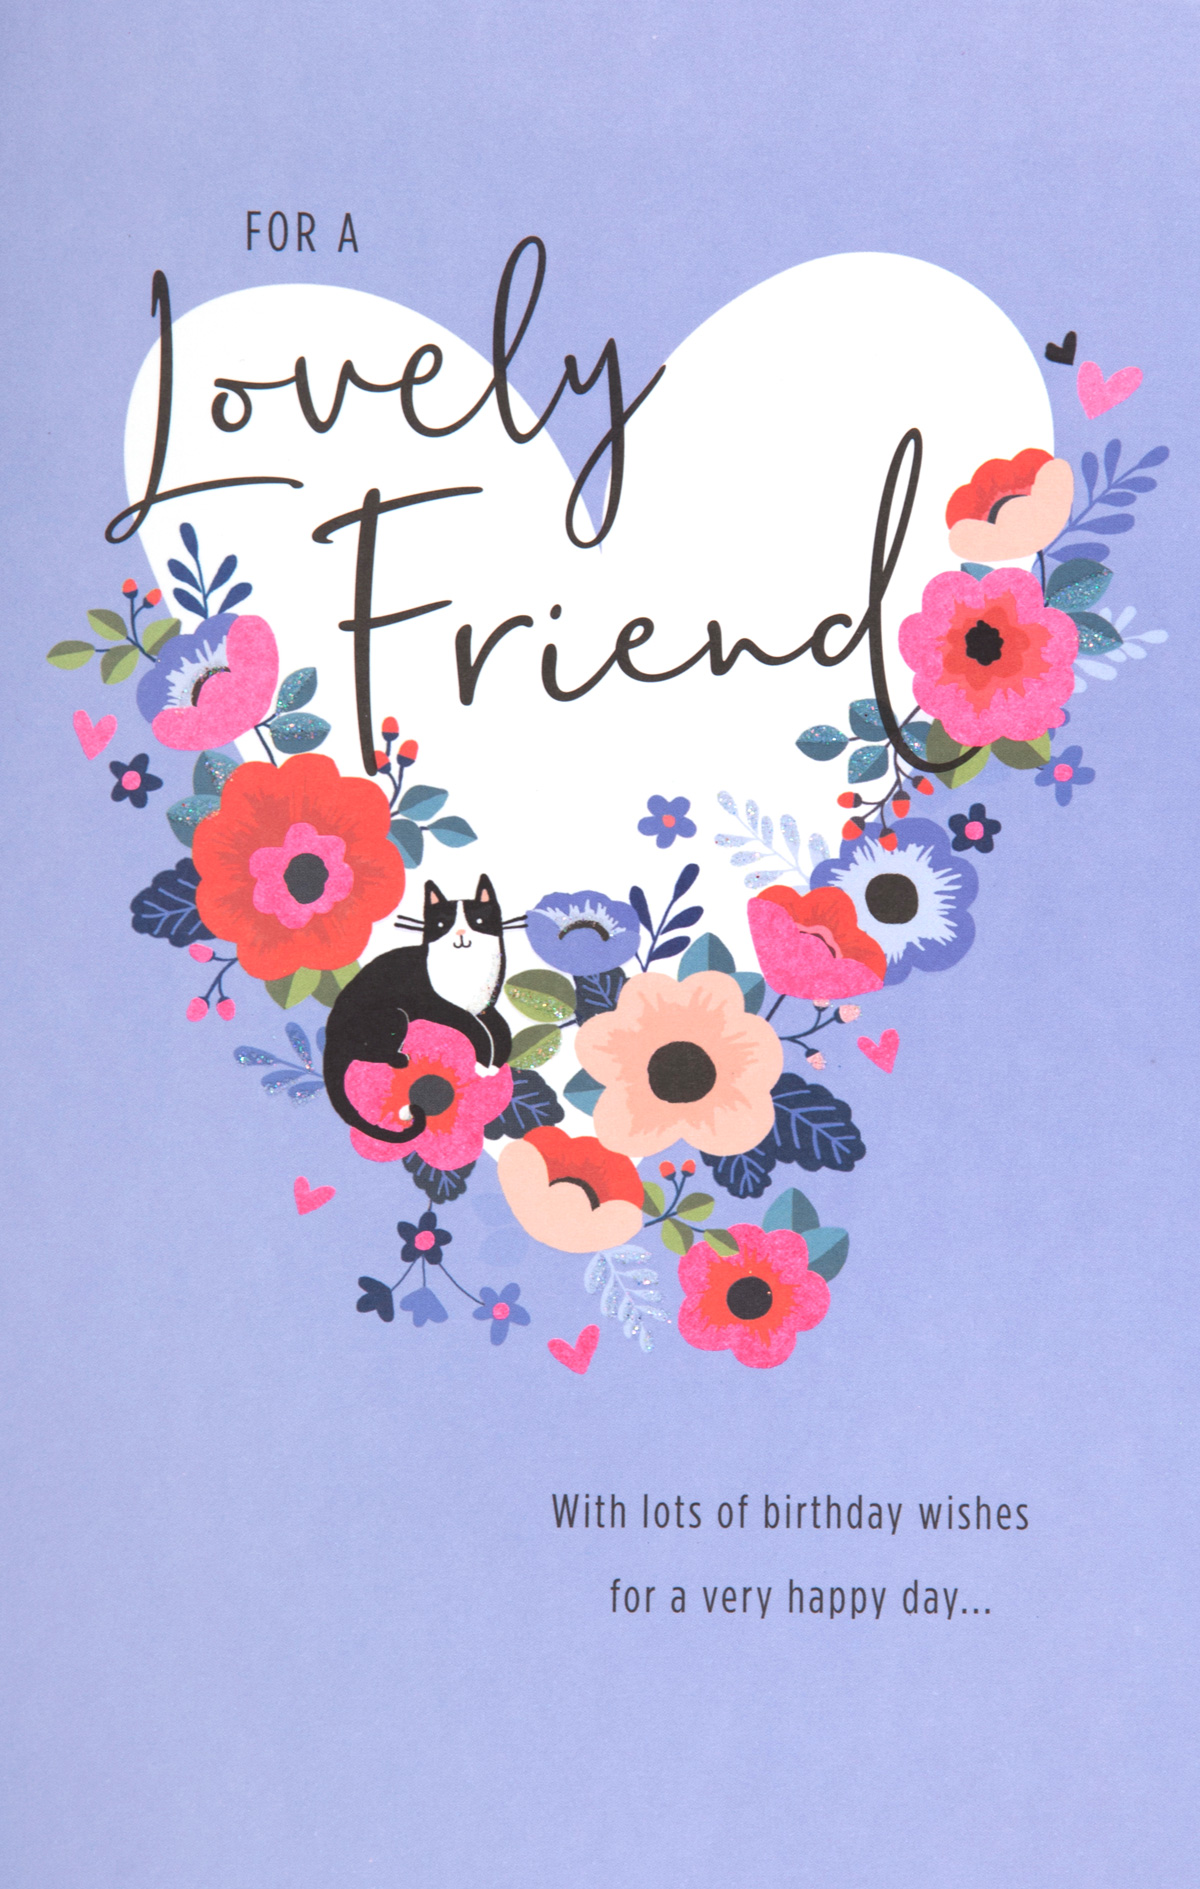 Lovely Friend Birthday Card